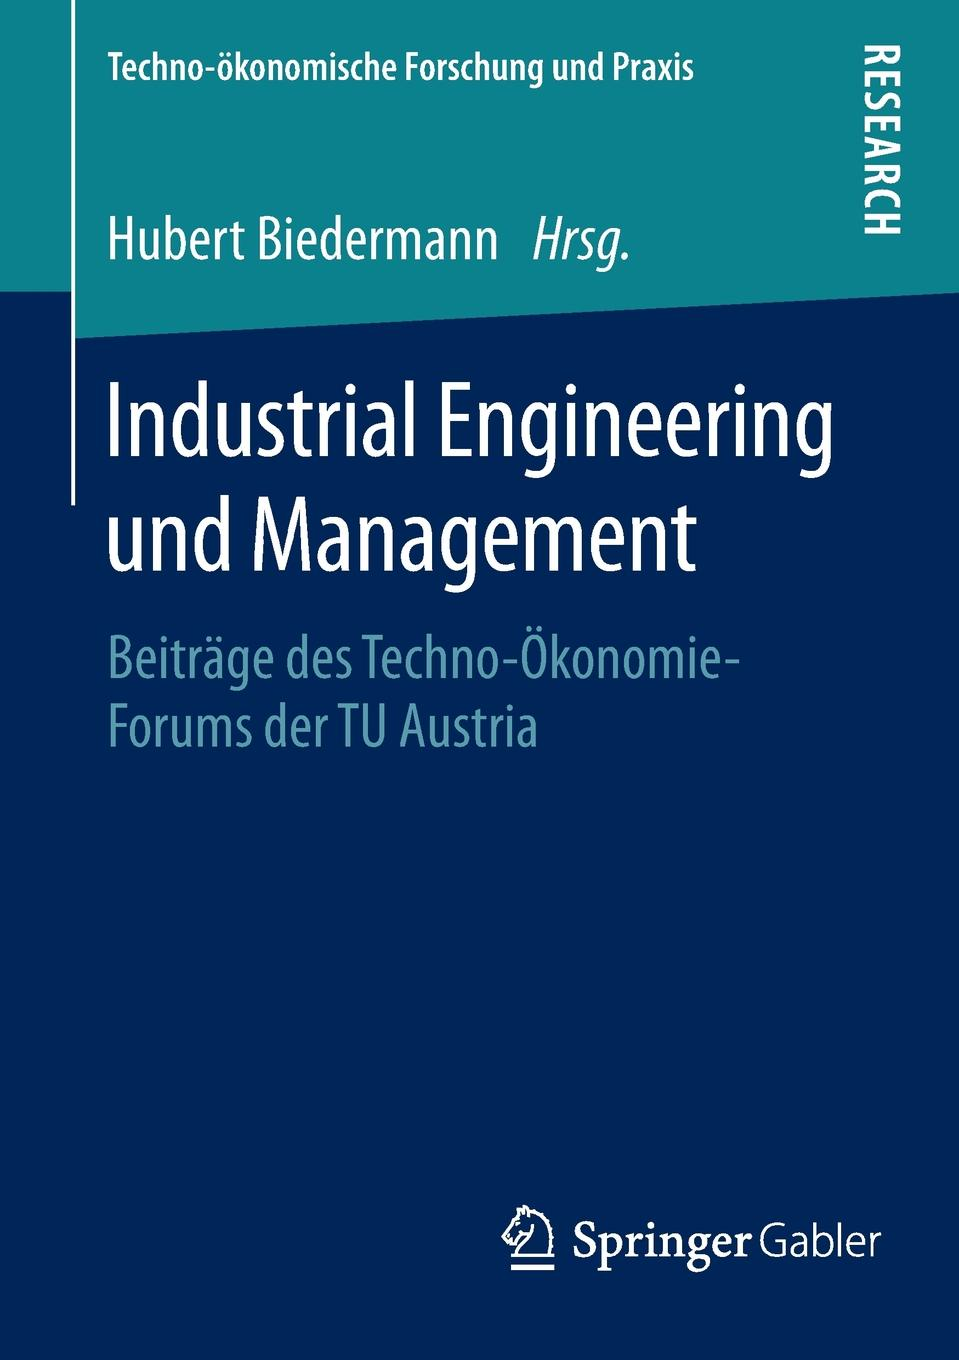 Industrial Engineering und Management. Beitrage des Techno-Okonomie-Forums der TU Austria yahia zare mehrjerdi english for industrial engineering students